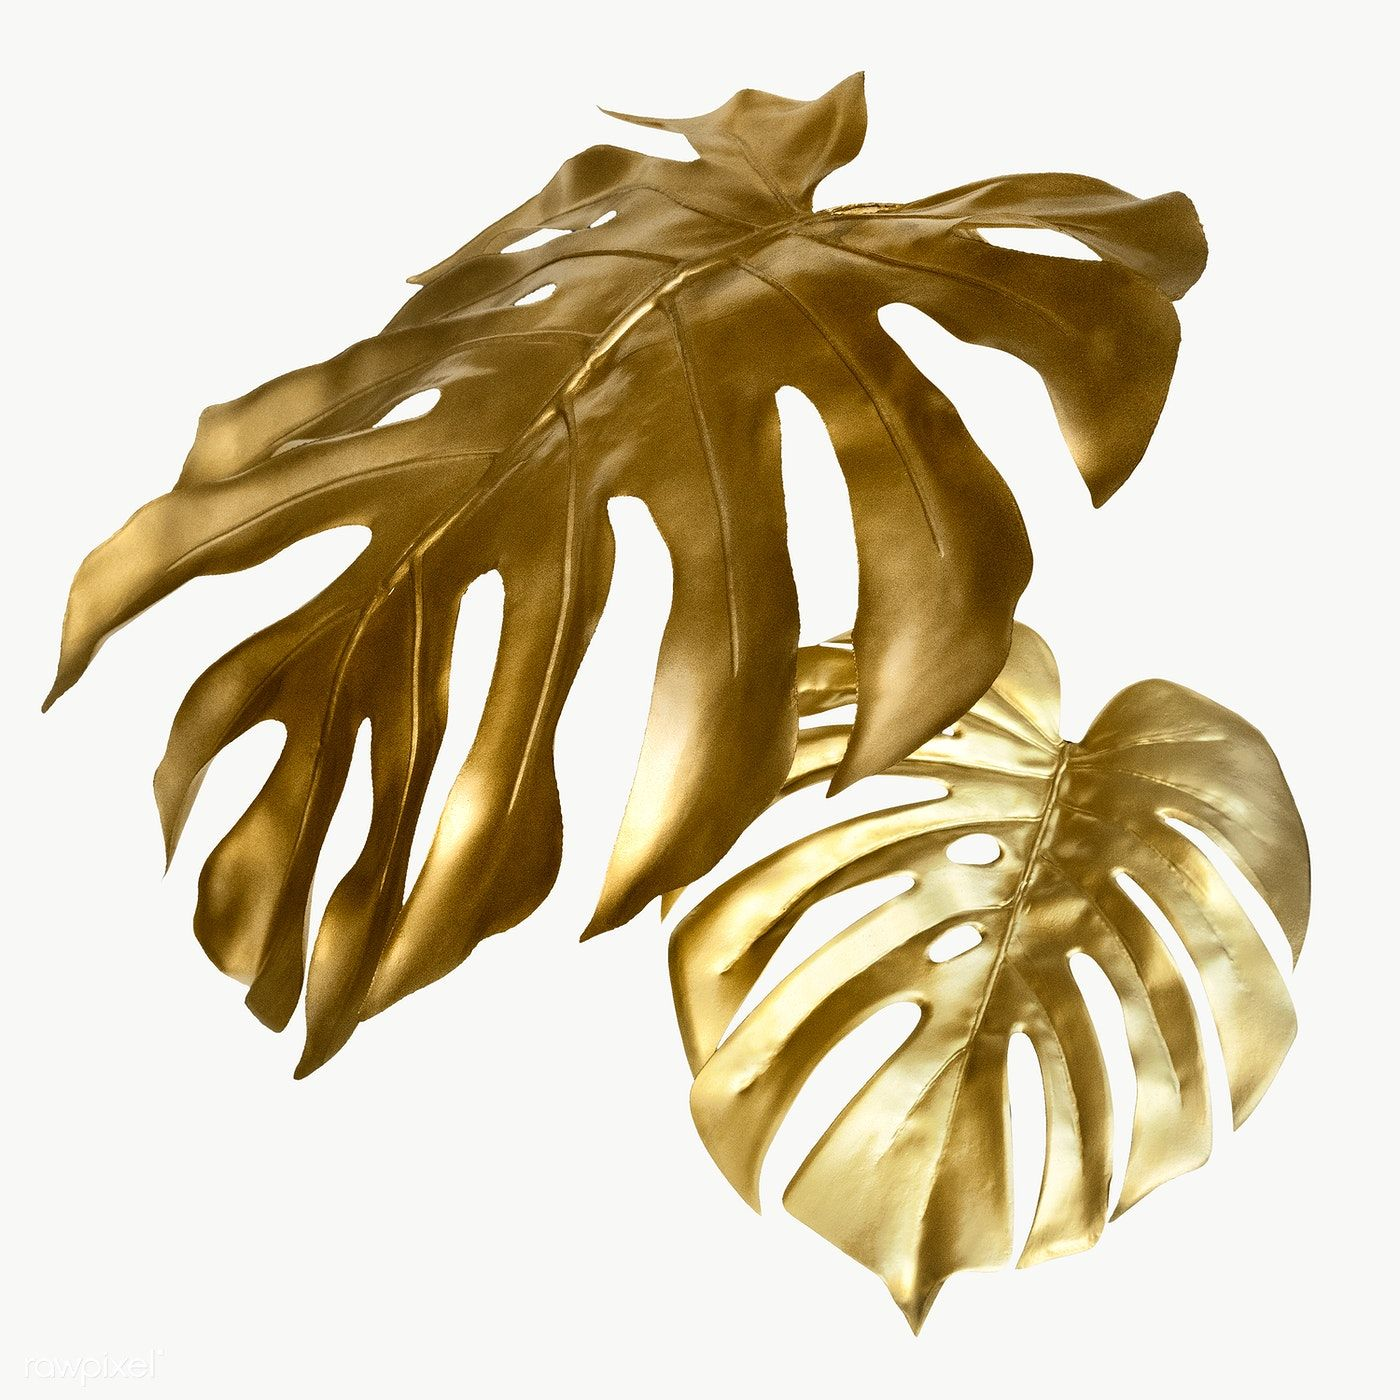 Shiny Golden Monstera Leaves Transparent Png Free Image By Rawpixel Com Teddy Rawpixel